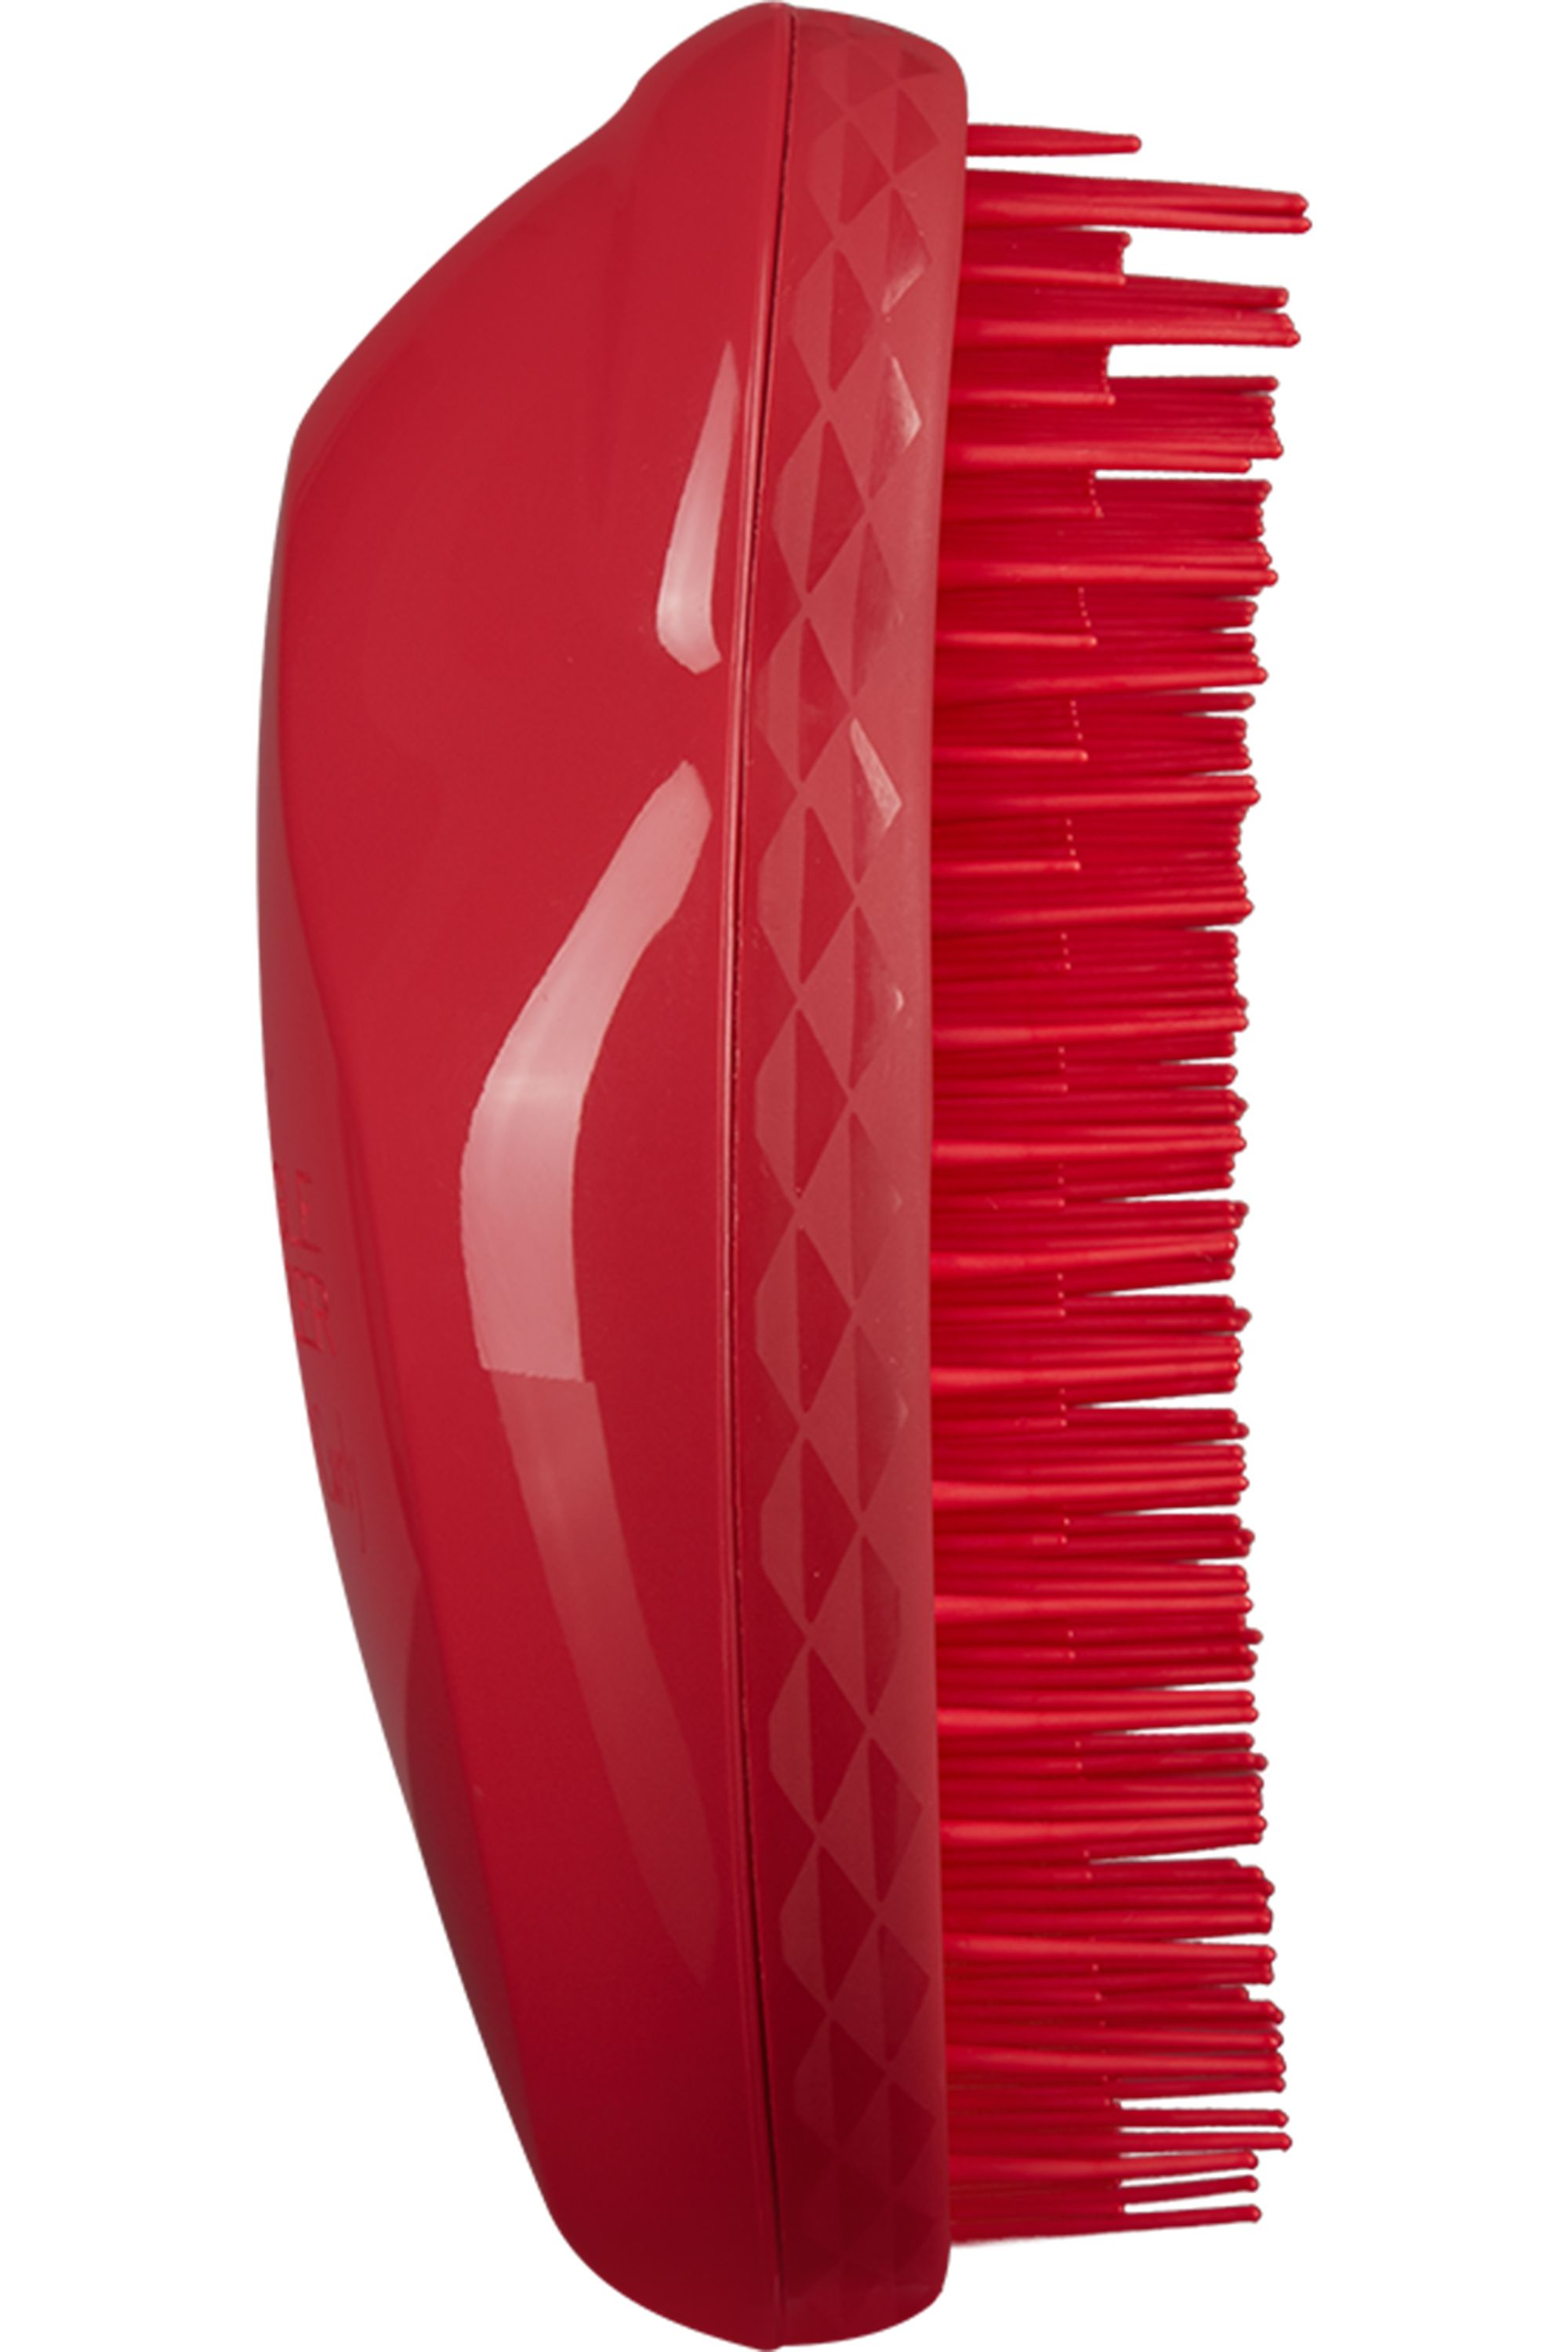 Blissim : Tangle Teezer - Brosse démêlante Thick & Curly Red Salsa - Brosse démêlante Thick & Curly Red Salsa